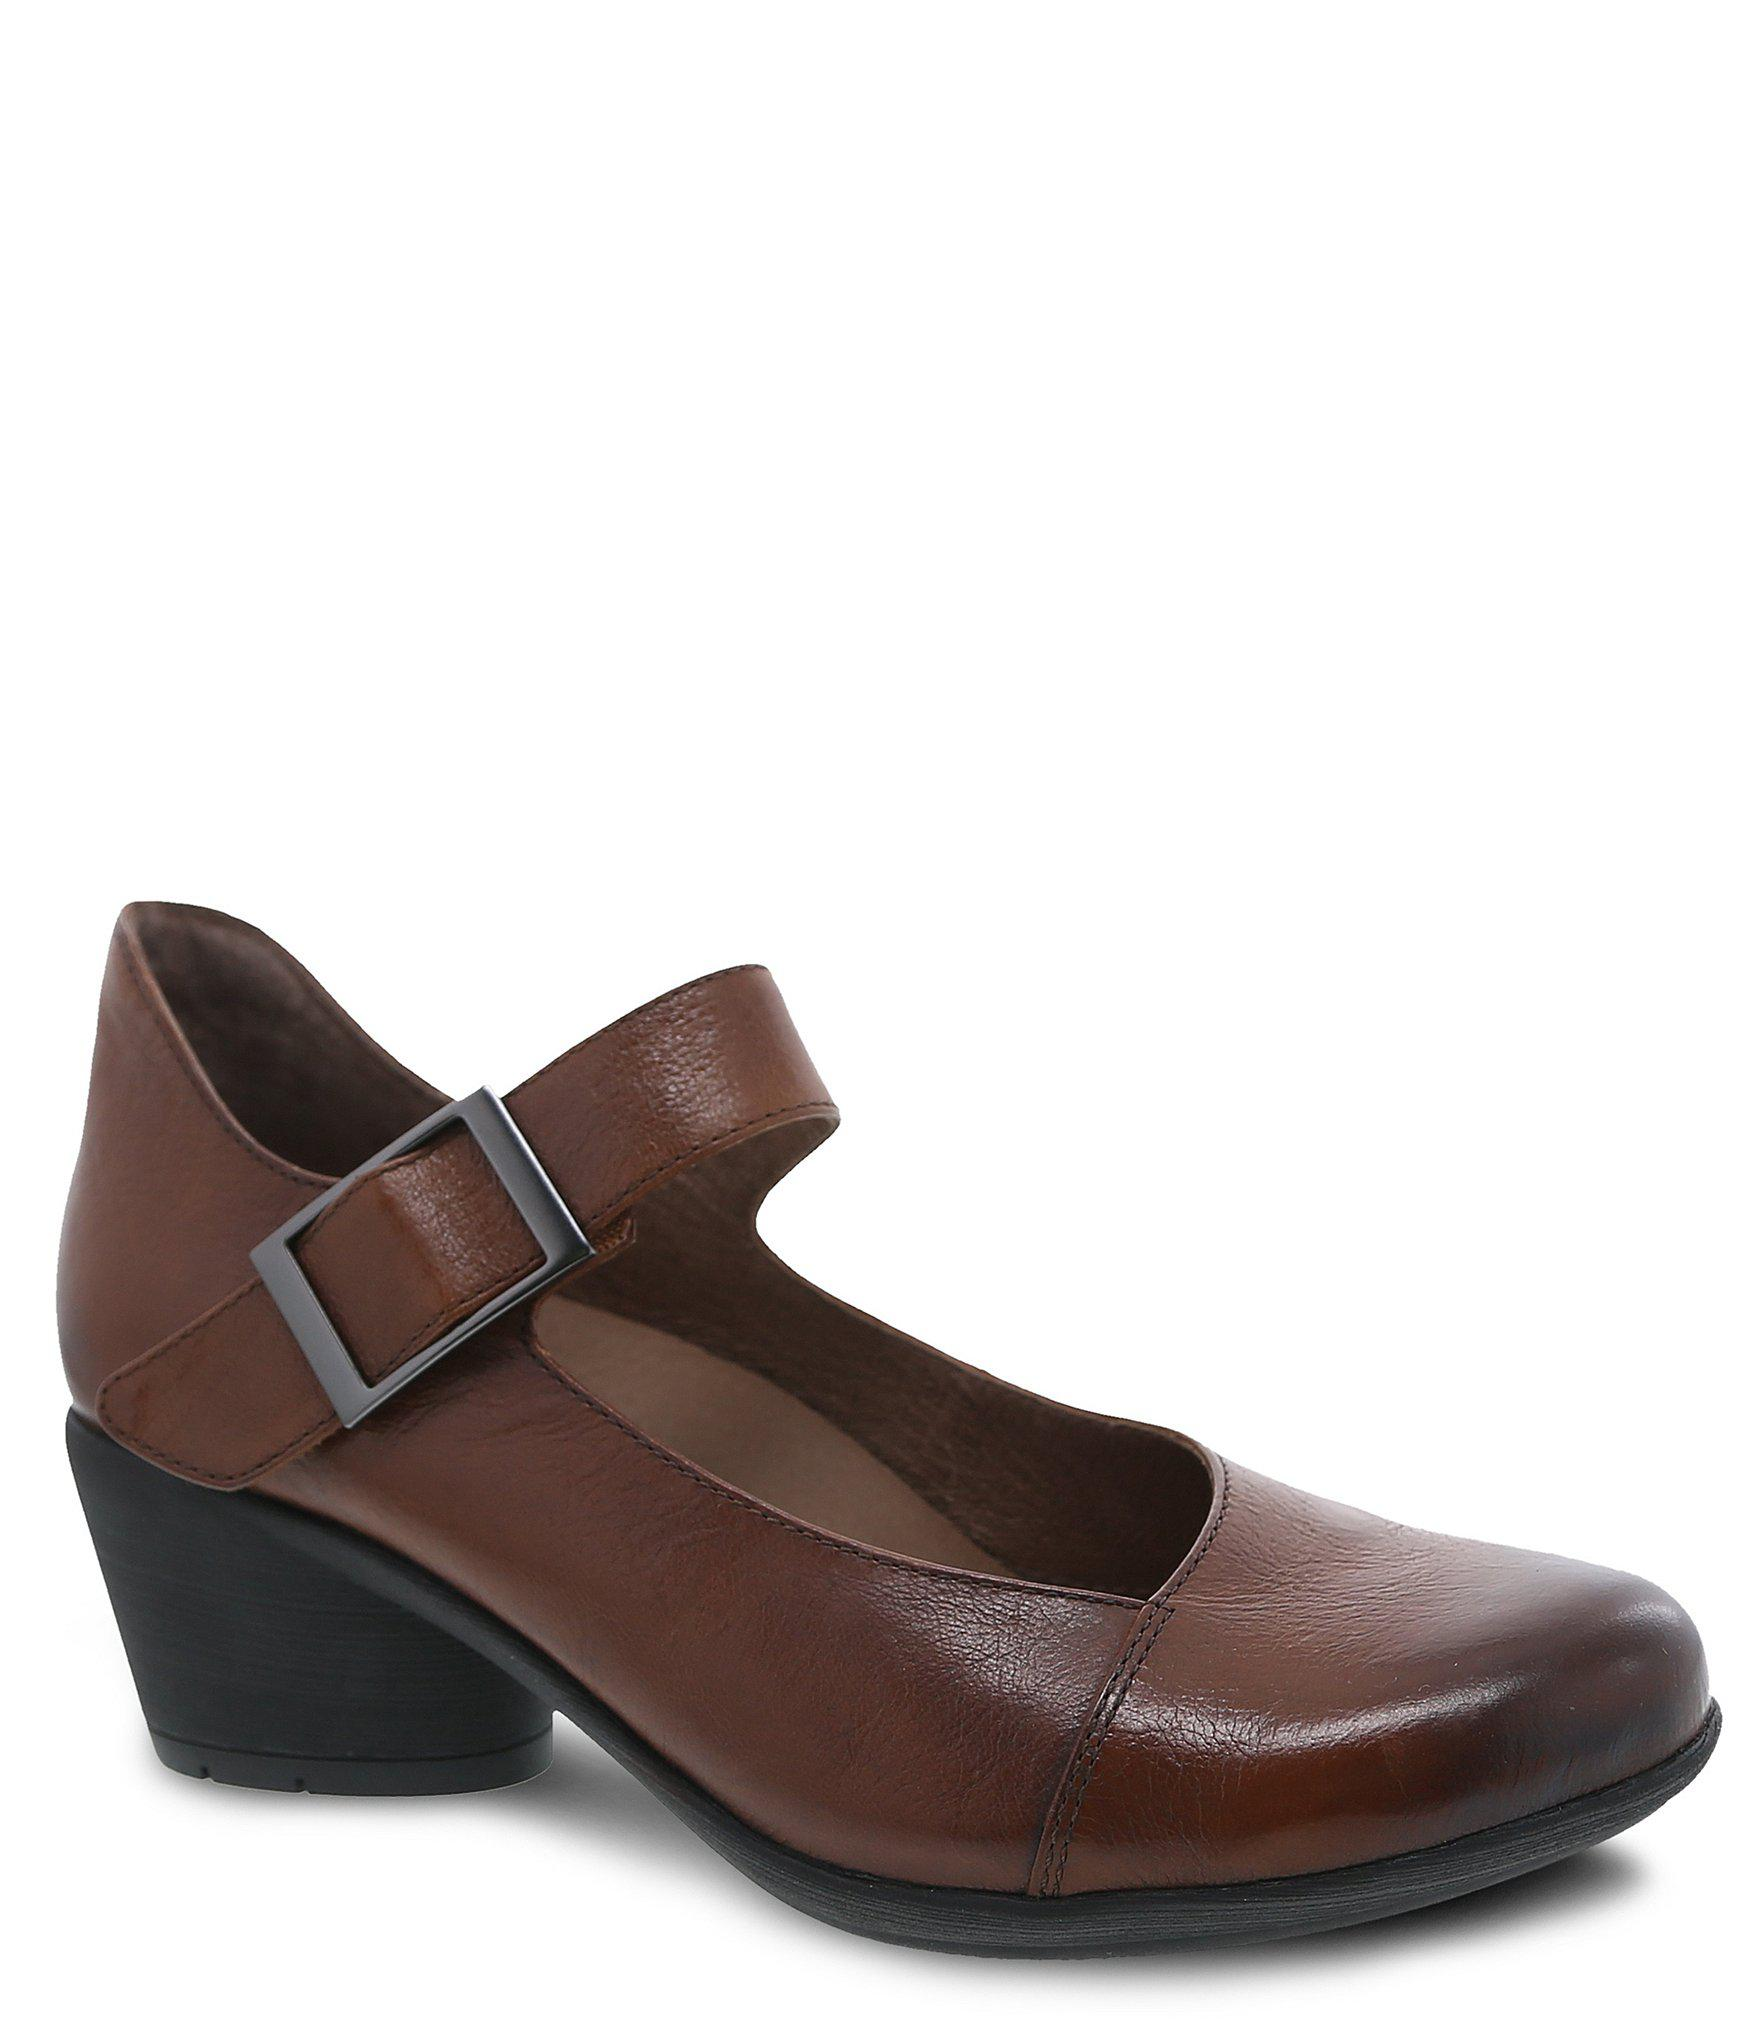 427d5acb0c02 Lyst - Dansko Roxanne Burnished Calf Leather Mary Jane Pumps in Brown